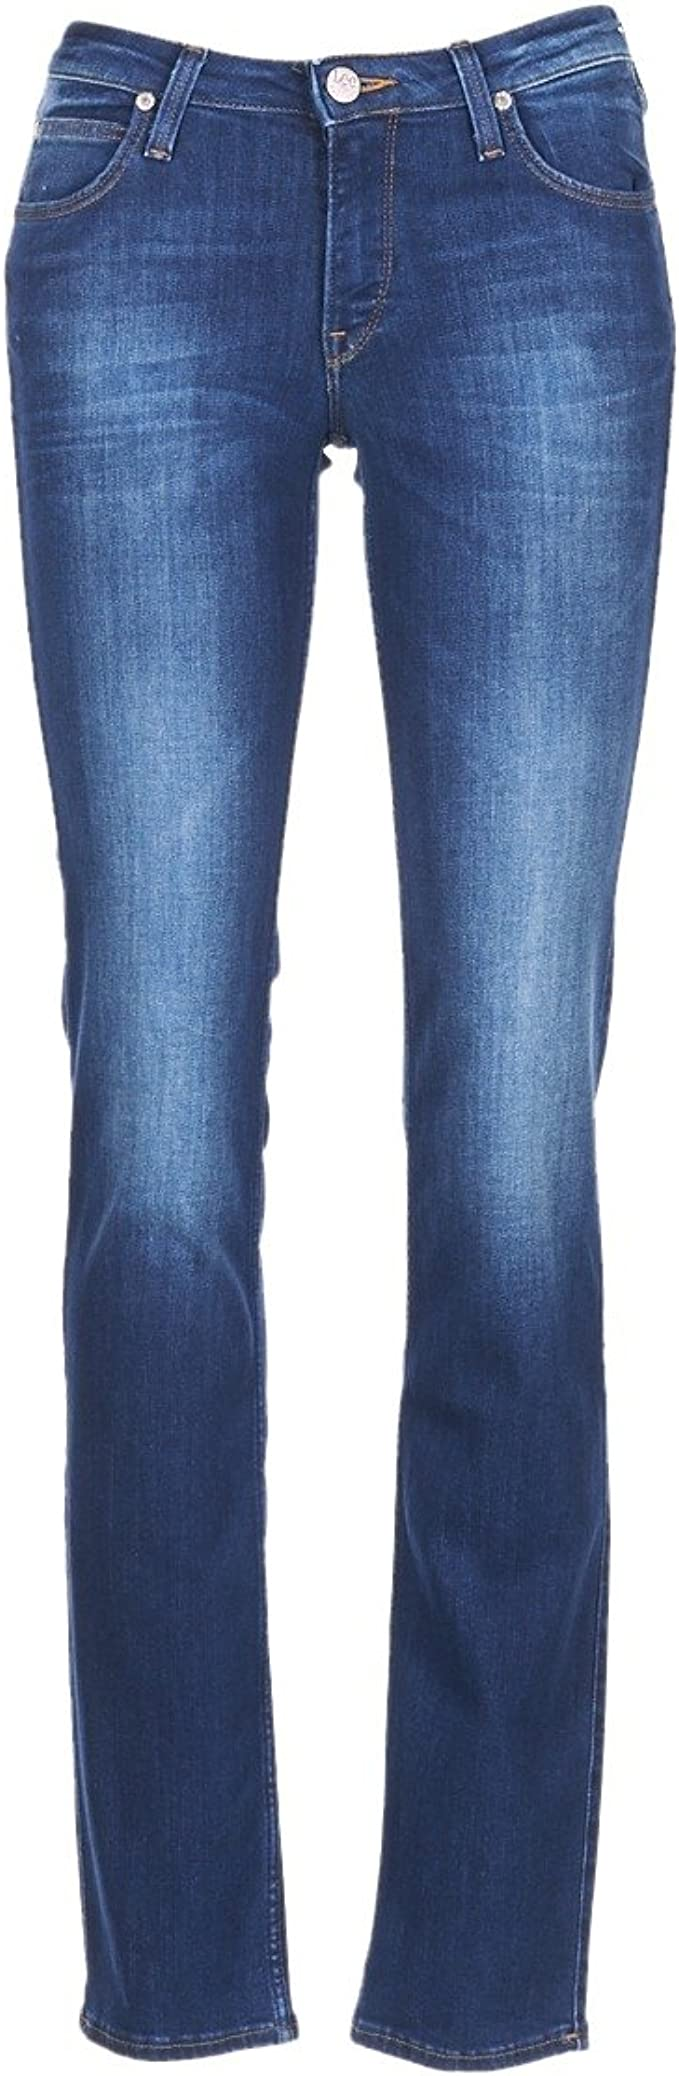 283 opinioni per Lee Marion Straight Jeans Donna